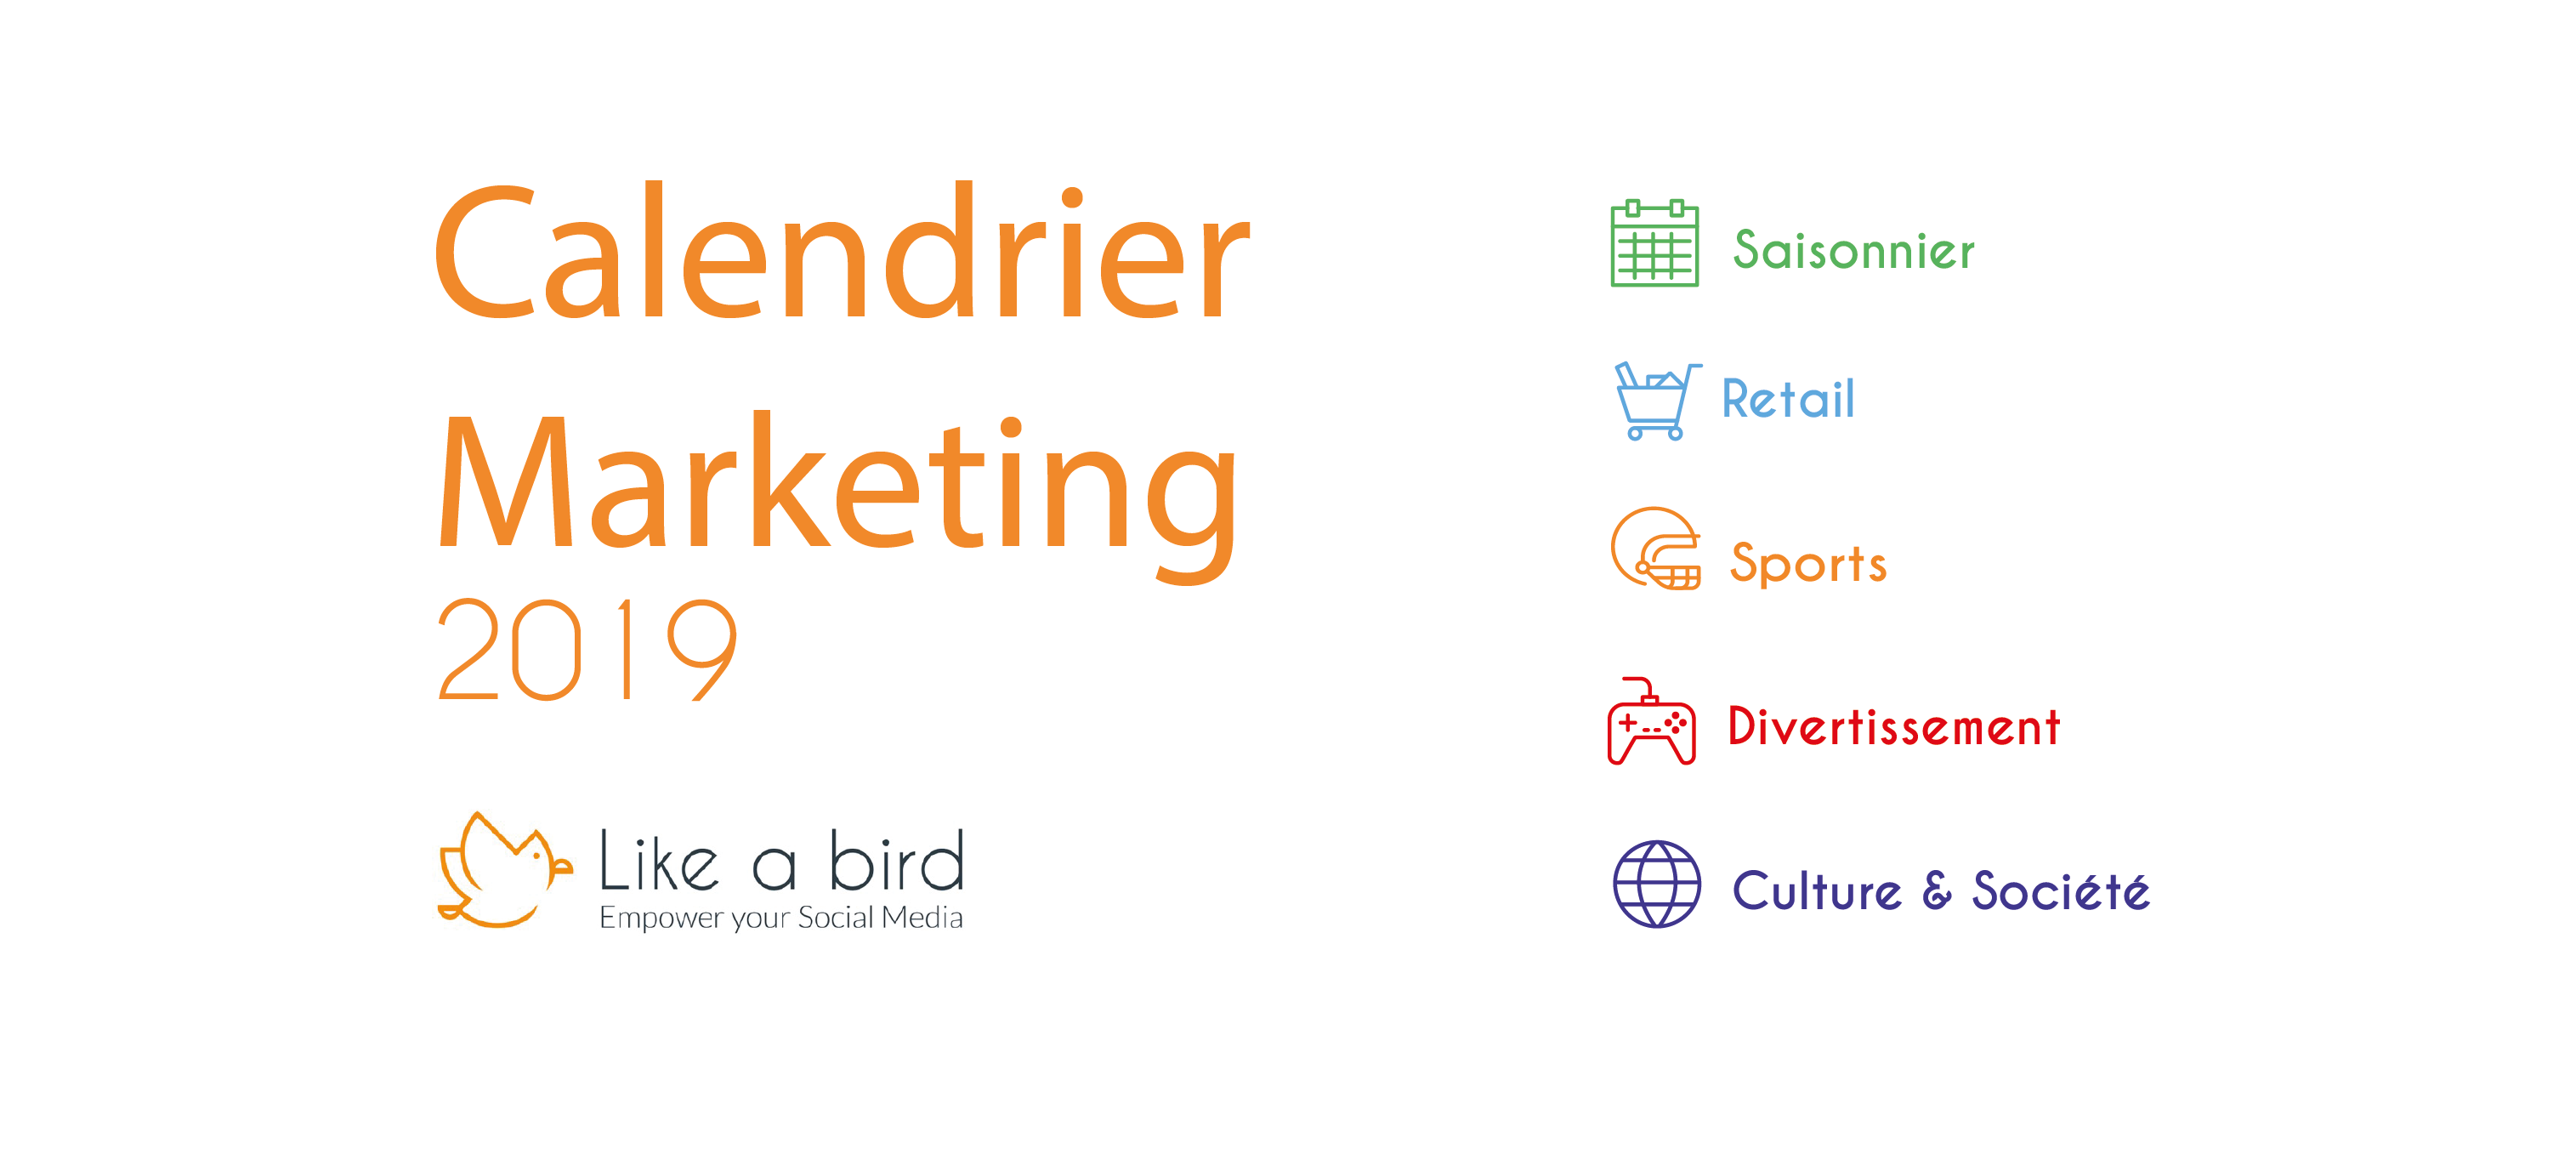 Calendrier Marketing Like a Bird 2019